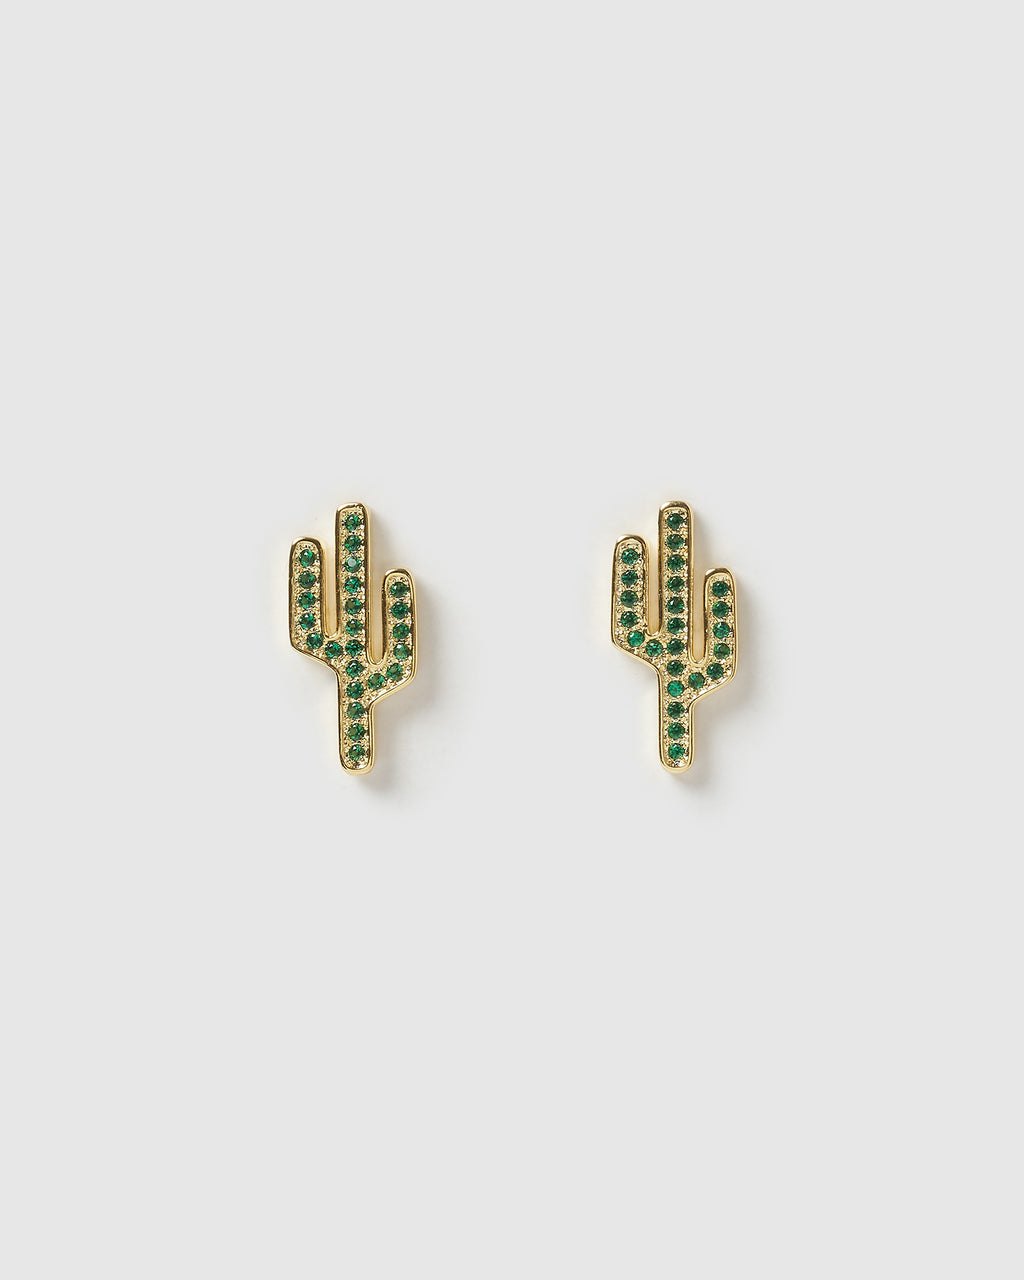 Izoa Saguaro Stud Earrings Gold Green